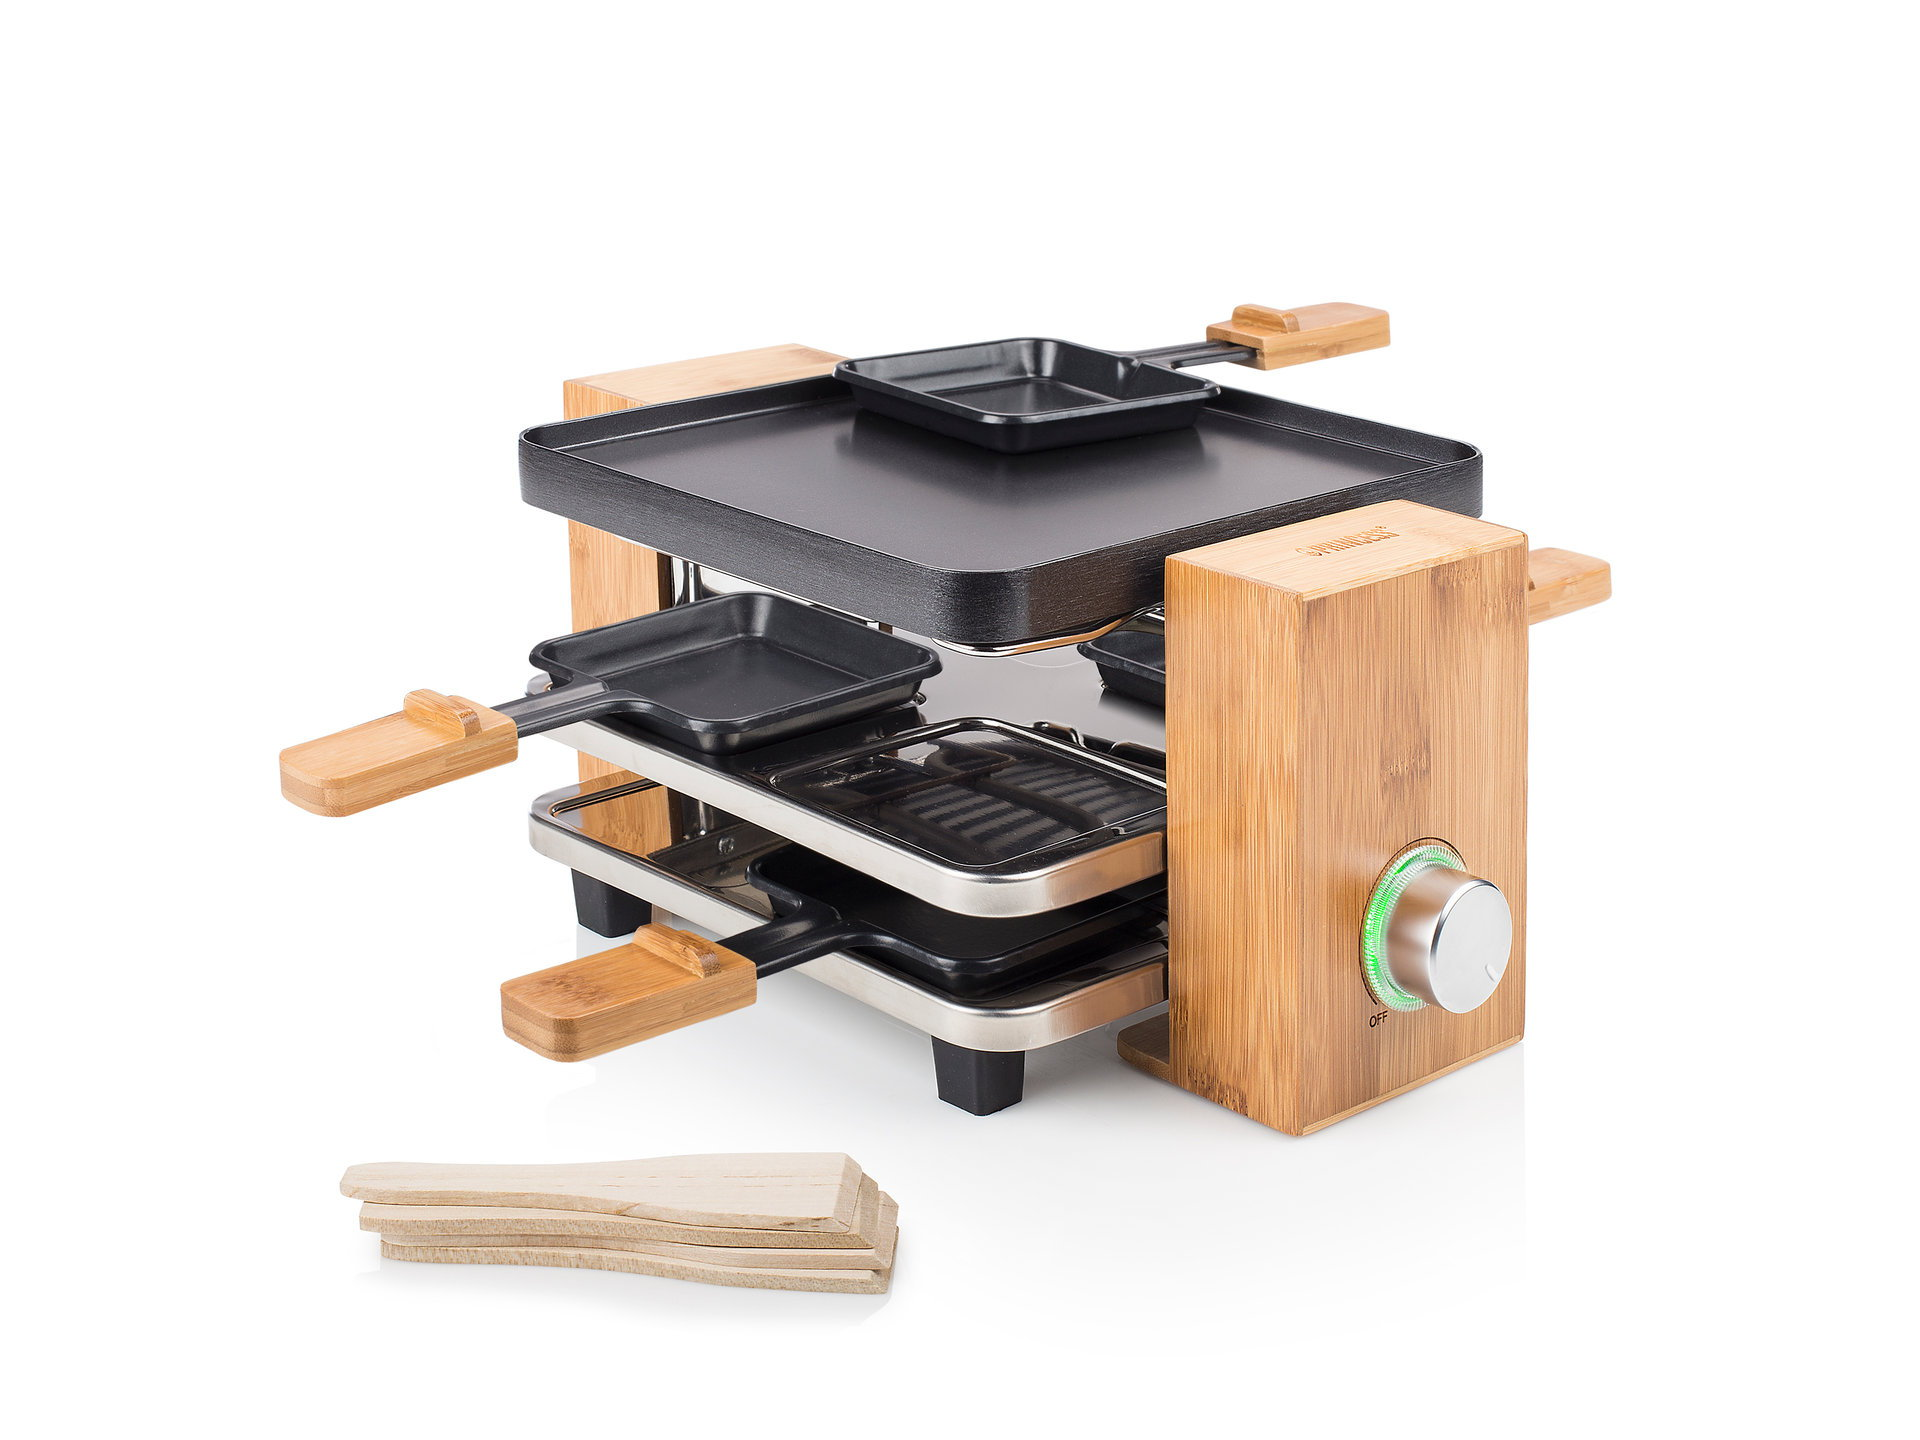 Princess 01.162900.01.001 Raclette Pure 4 Bamboo housing